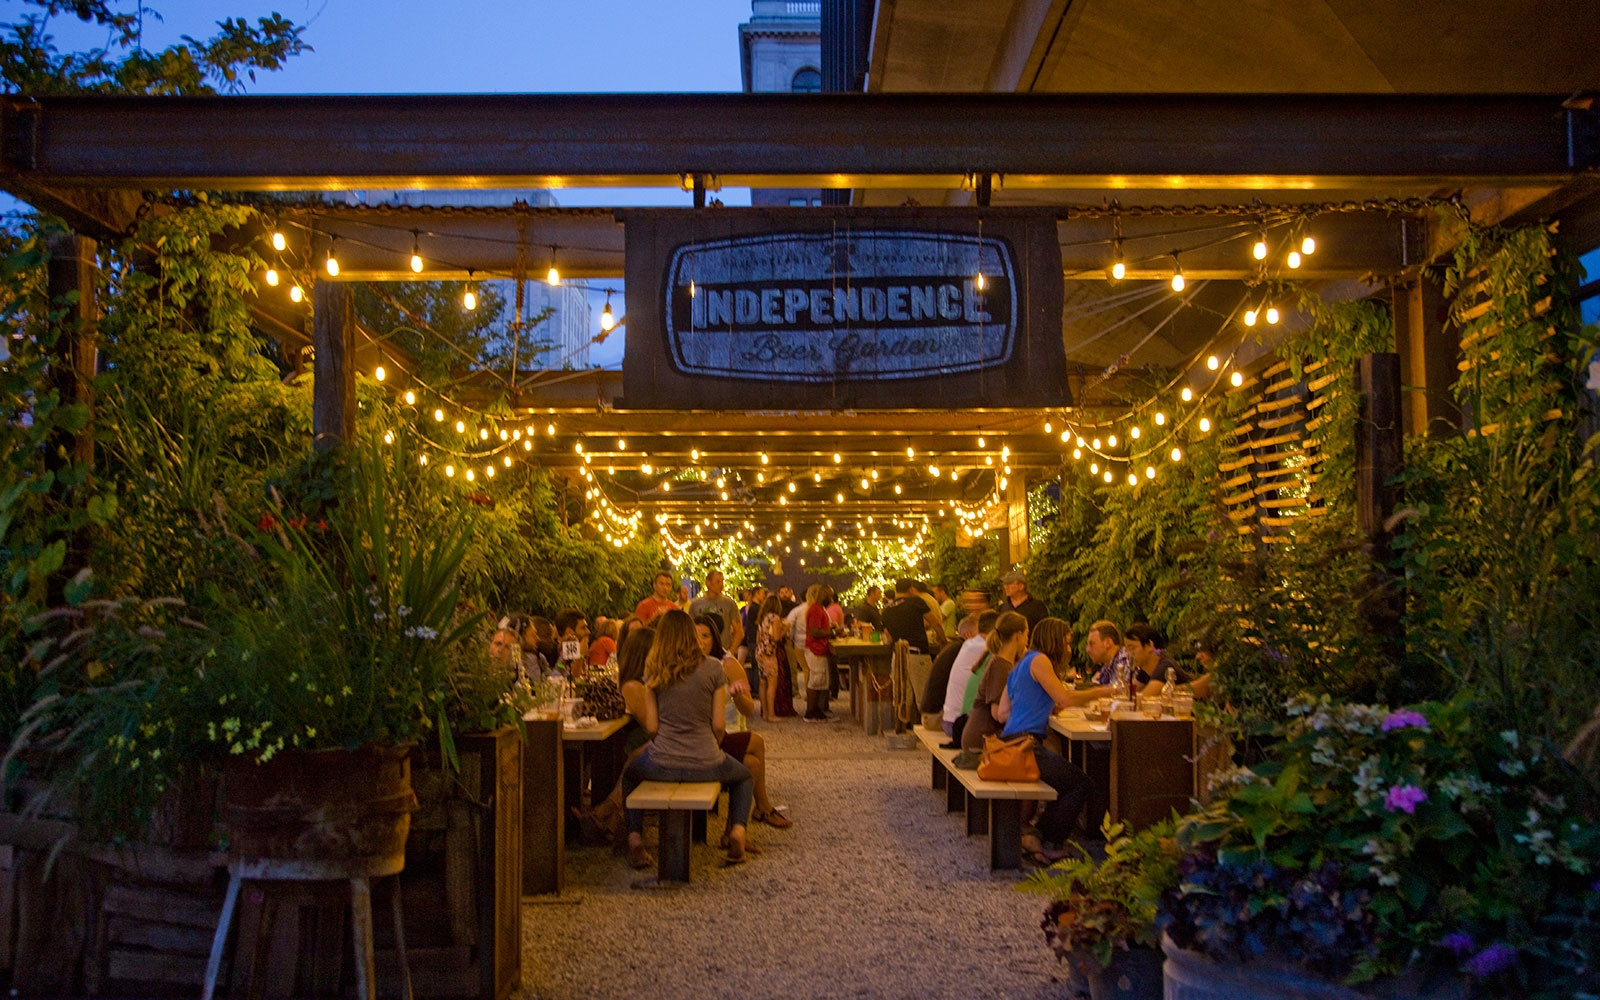 Philadelphia Beer Garden Independence